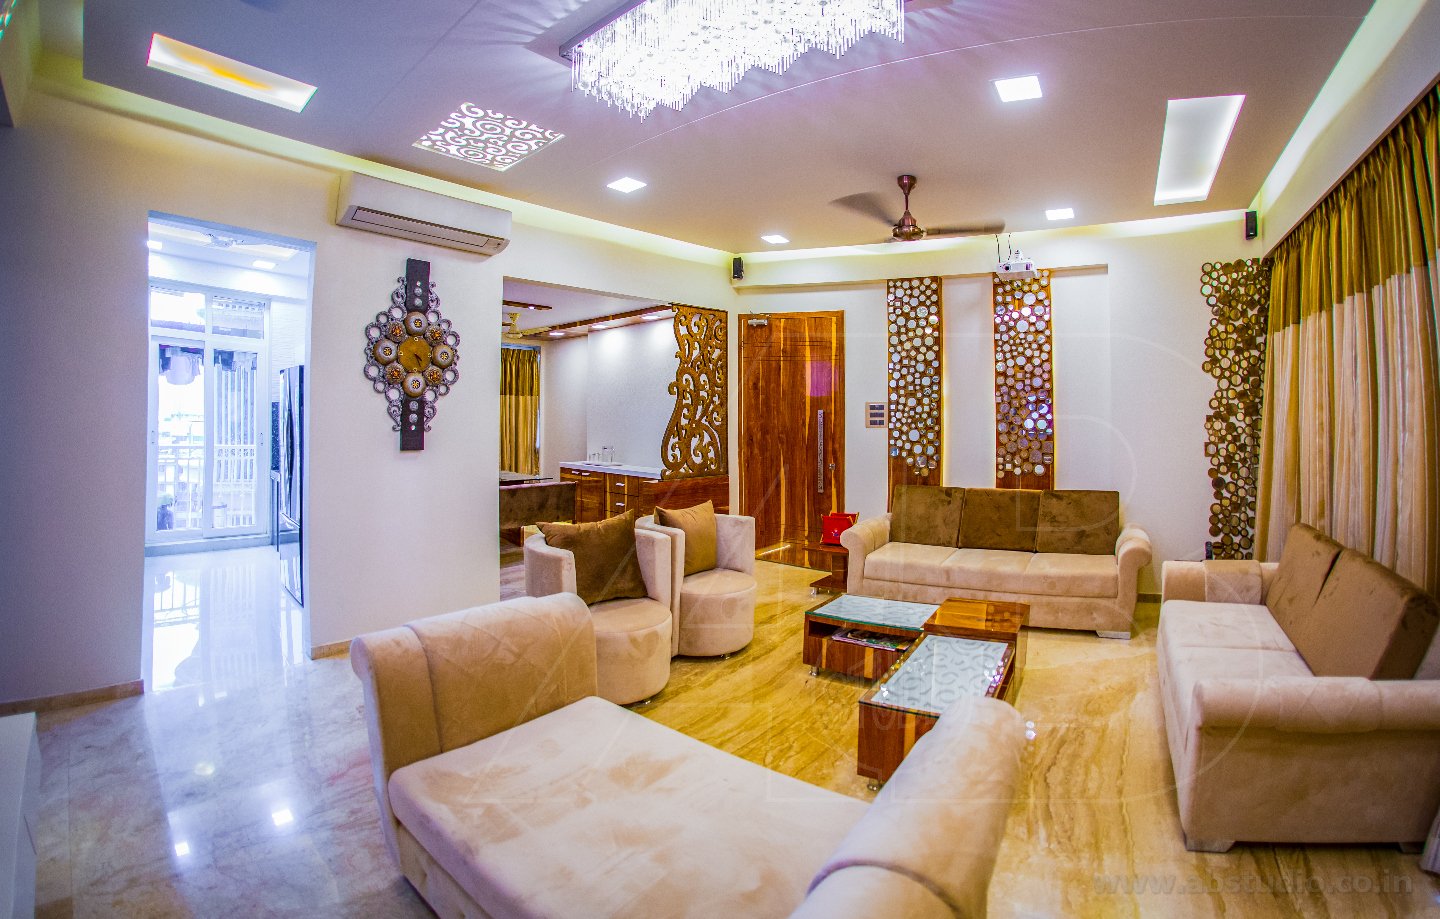 Interior design services in mumbai for Interior design services